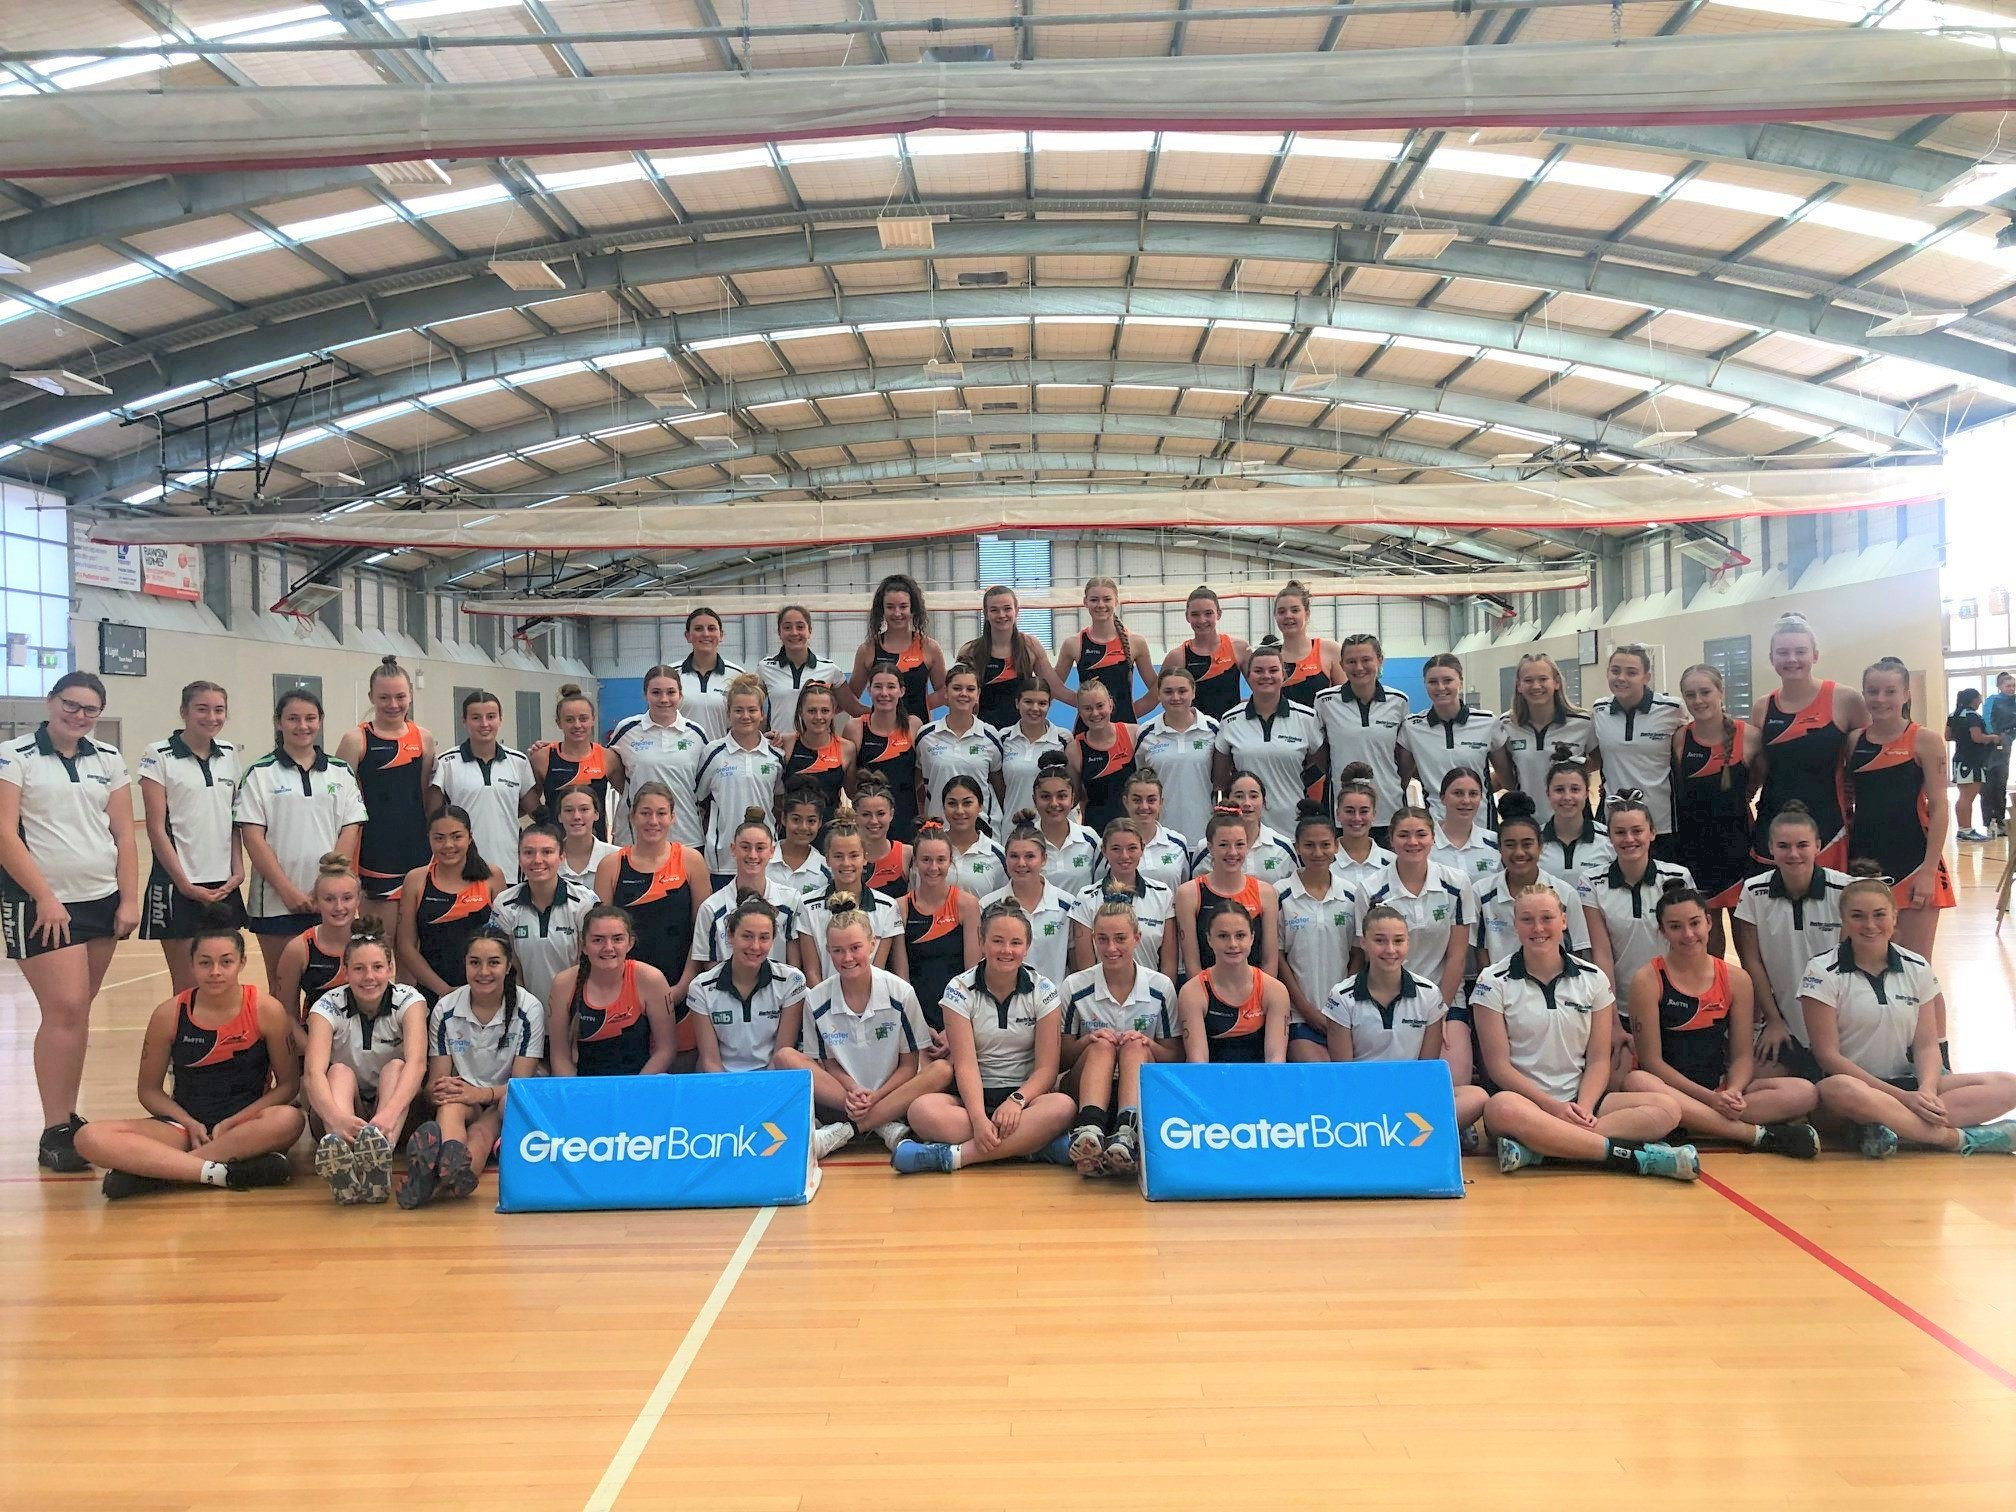 With restrictions for sport lifting across the state, the Hunter (HAS), Central Coast (CCAS) and Western Region Academies of Sport (WRAS) are working on a re-structured training schedule for their Greater Bank Netball Programs, with the hope of getting the young athletes back to training in the latter part of 2020.